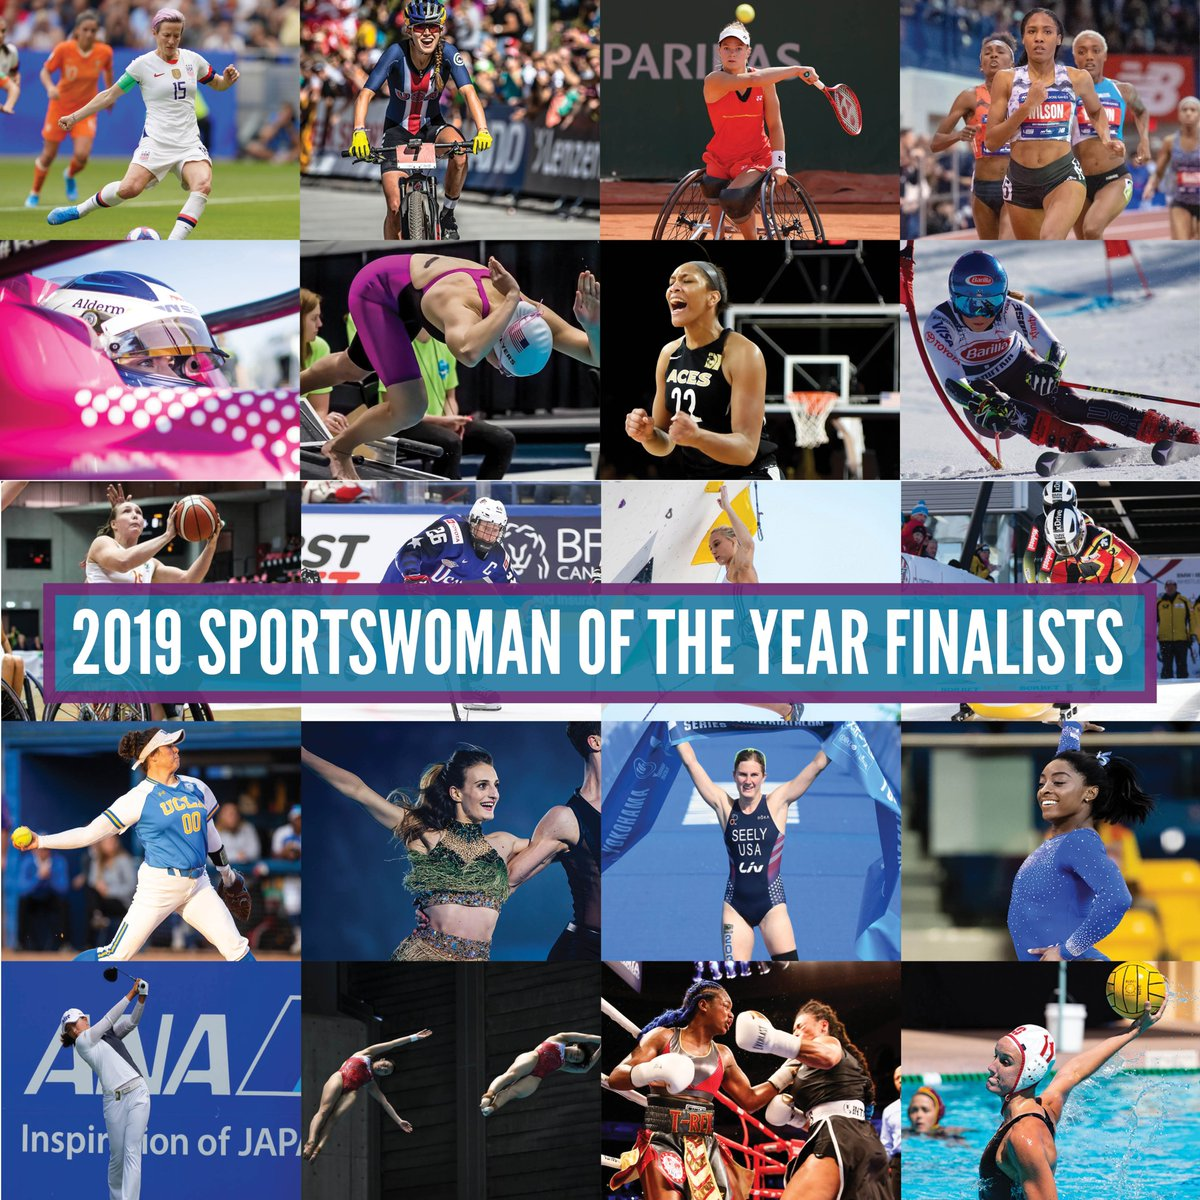 It's time! 🕑  Voting for the 2019 Sportswoman of the Year Awards is live NOW! Help your favorite athletes take home the honor at the 40th Annual Salute to Women in Sports! #SOY2019  Cast your ballot ✅ http://sportswomanoftheyear.com/